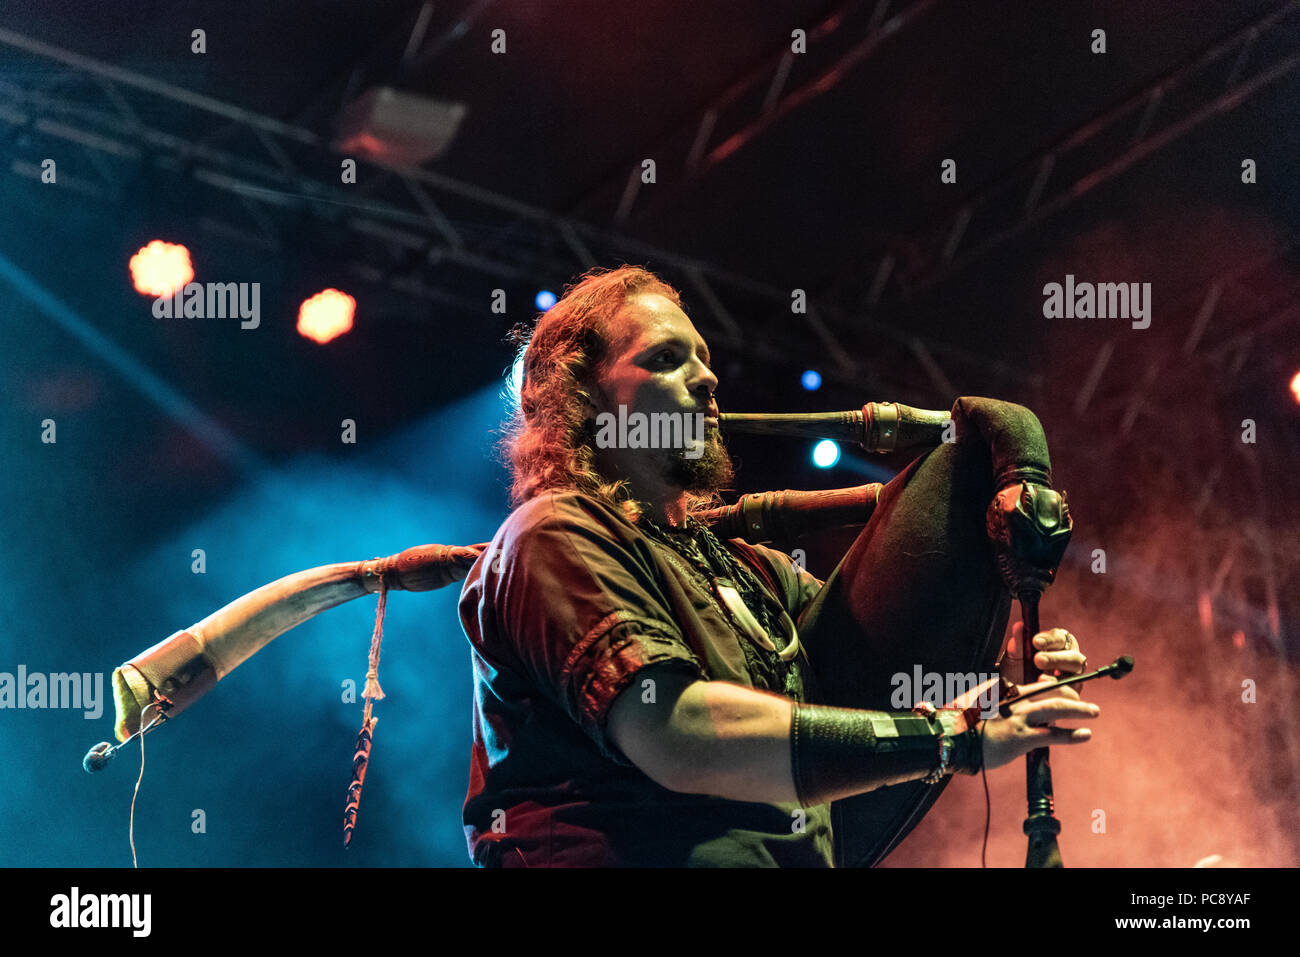 Folk Fest Stock Photos & Folk Fest Stock Images - Alamy